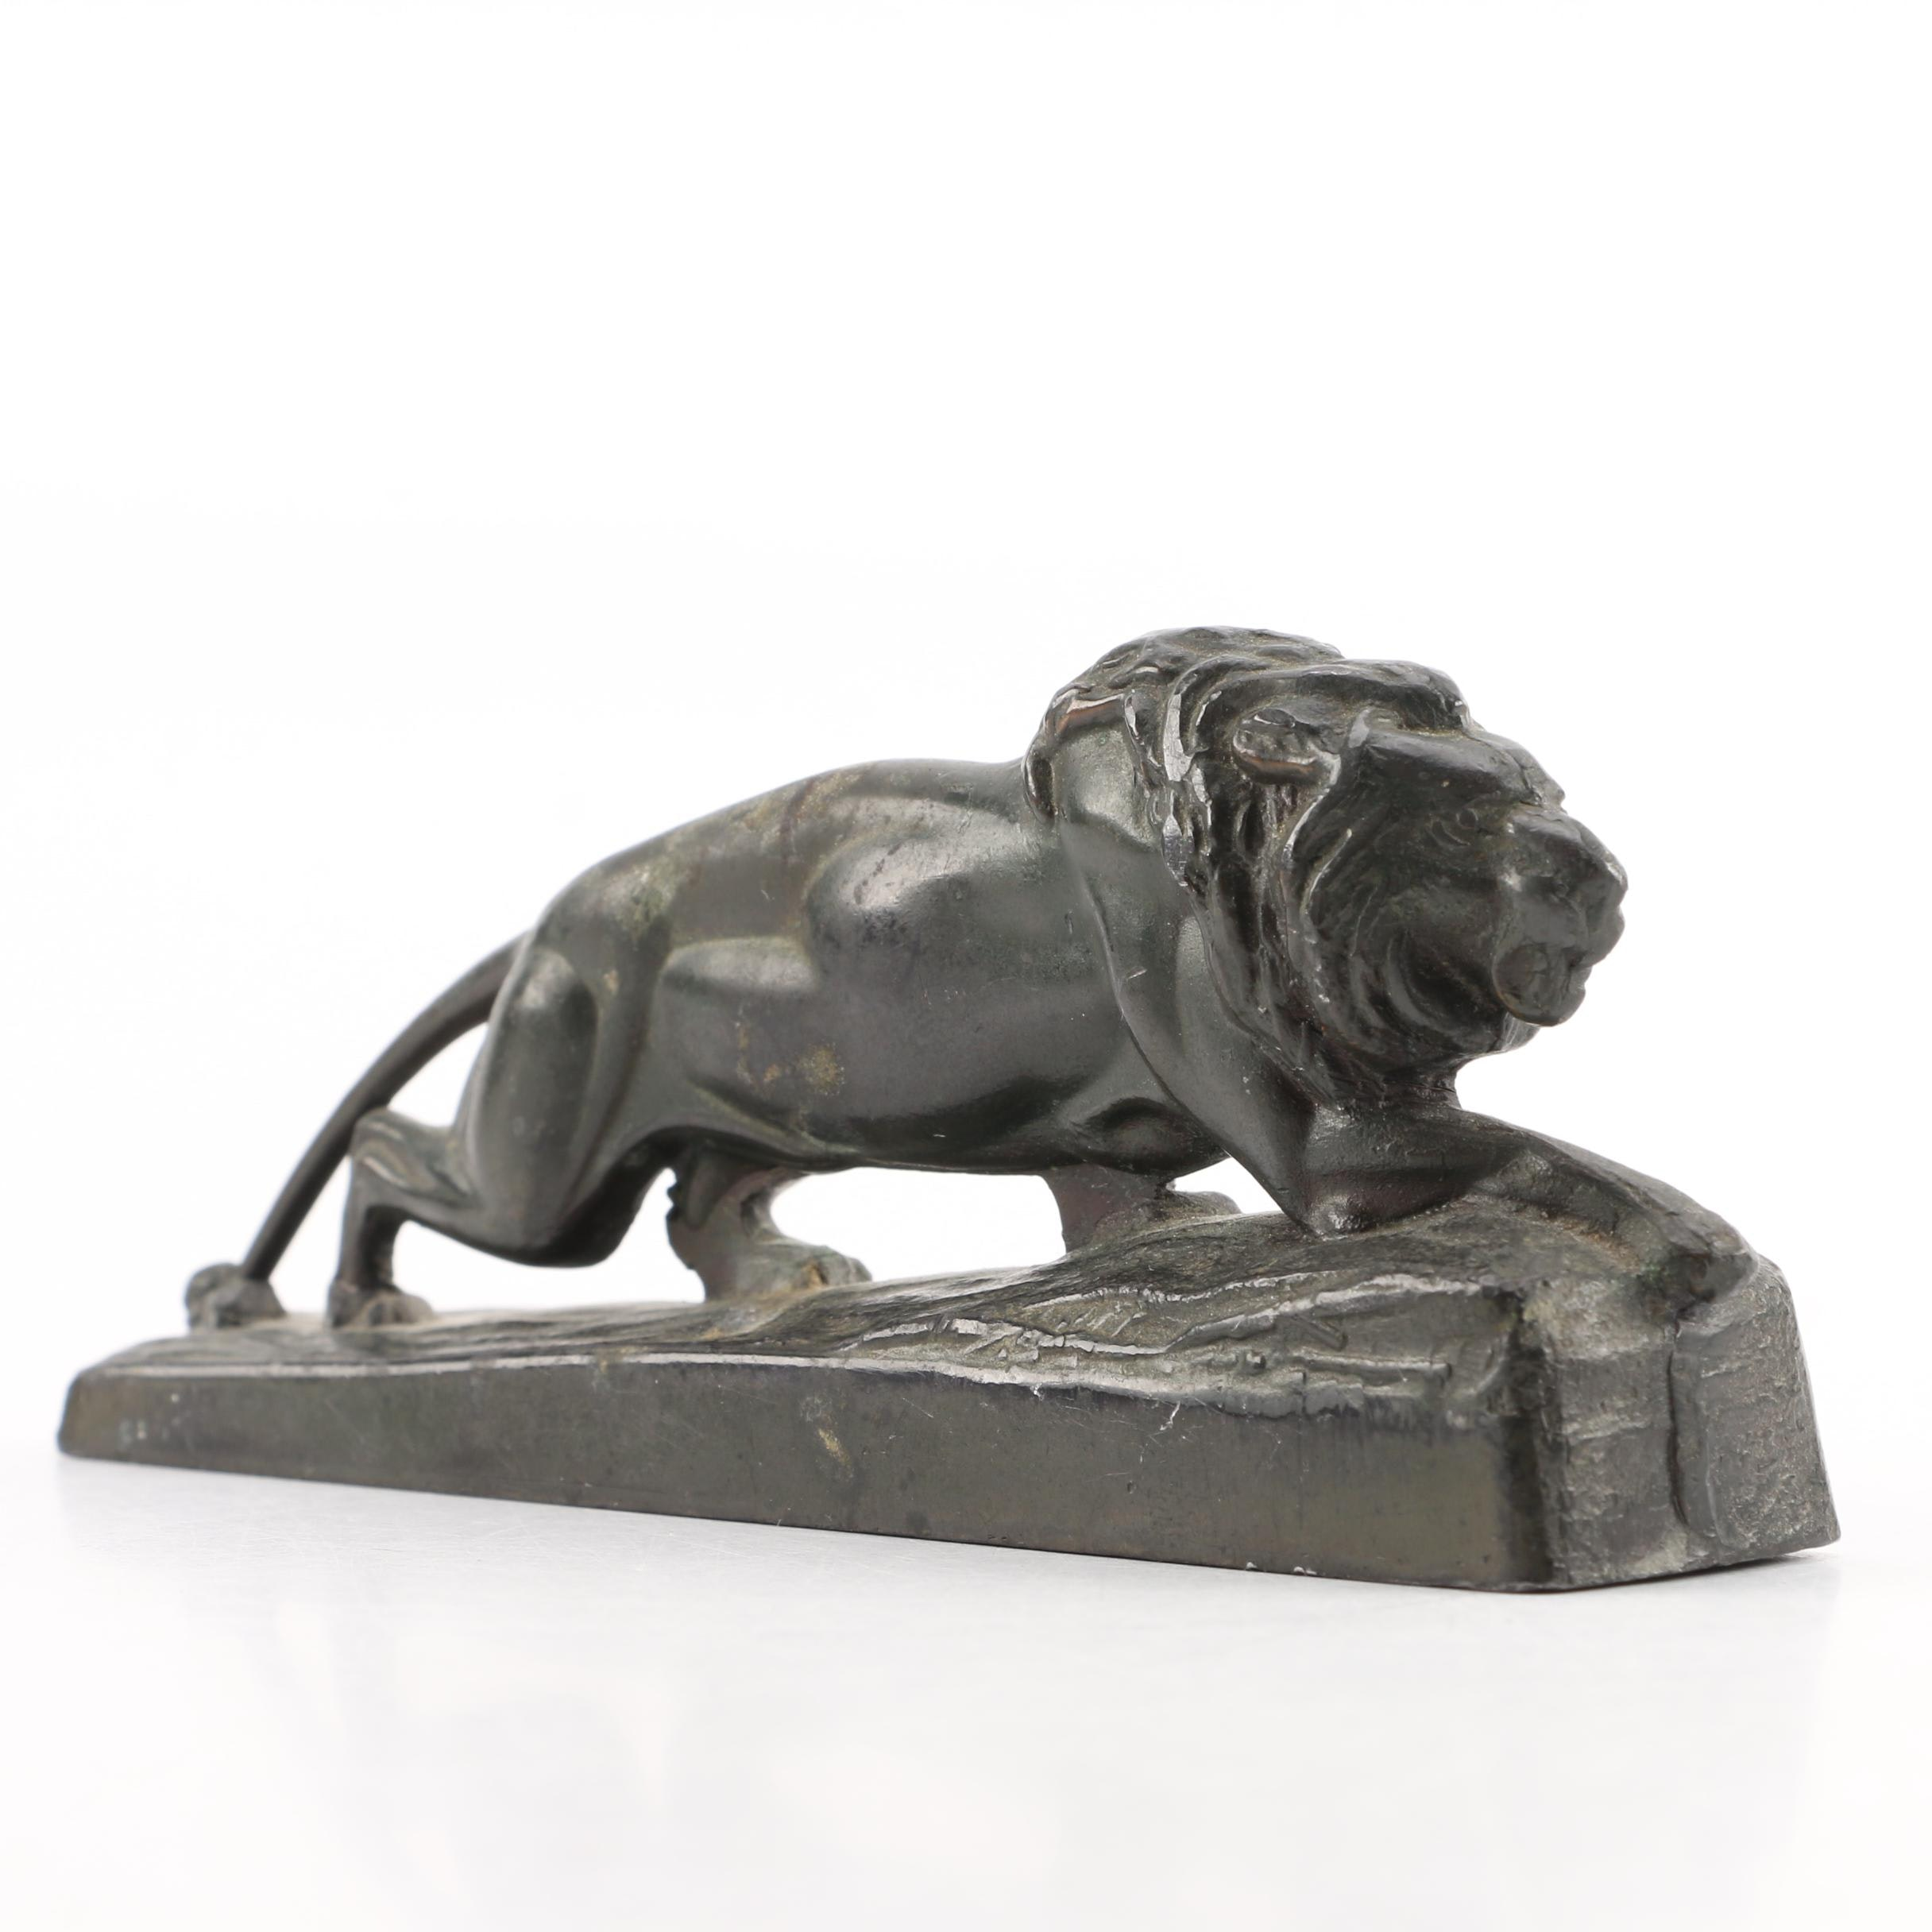 Metal Lawrence Lions Club Figurine